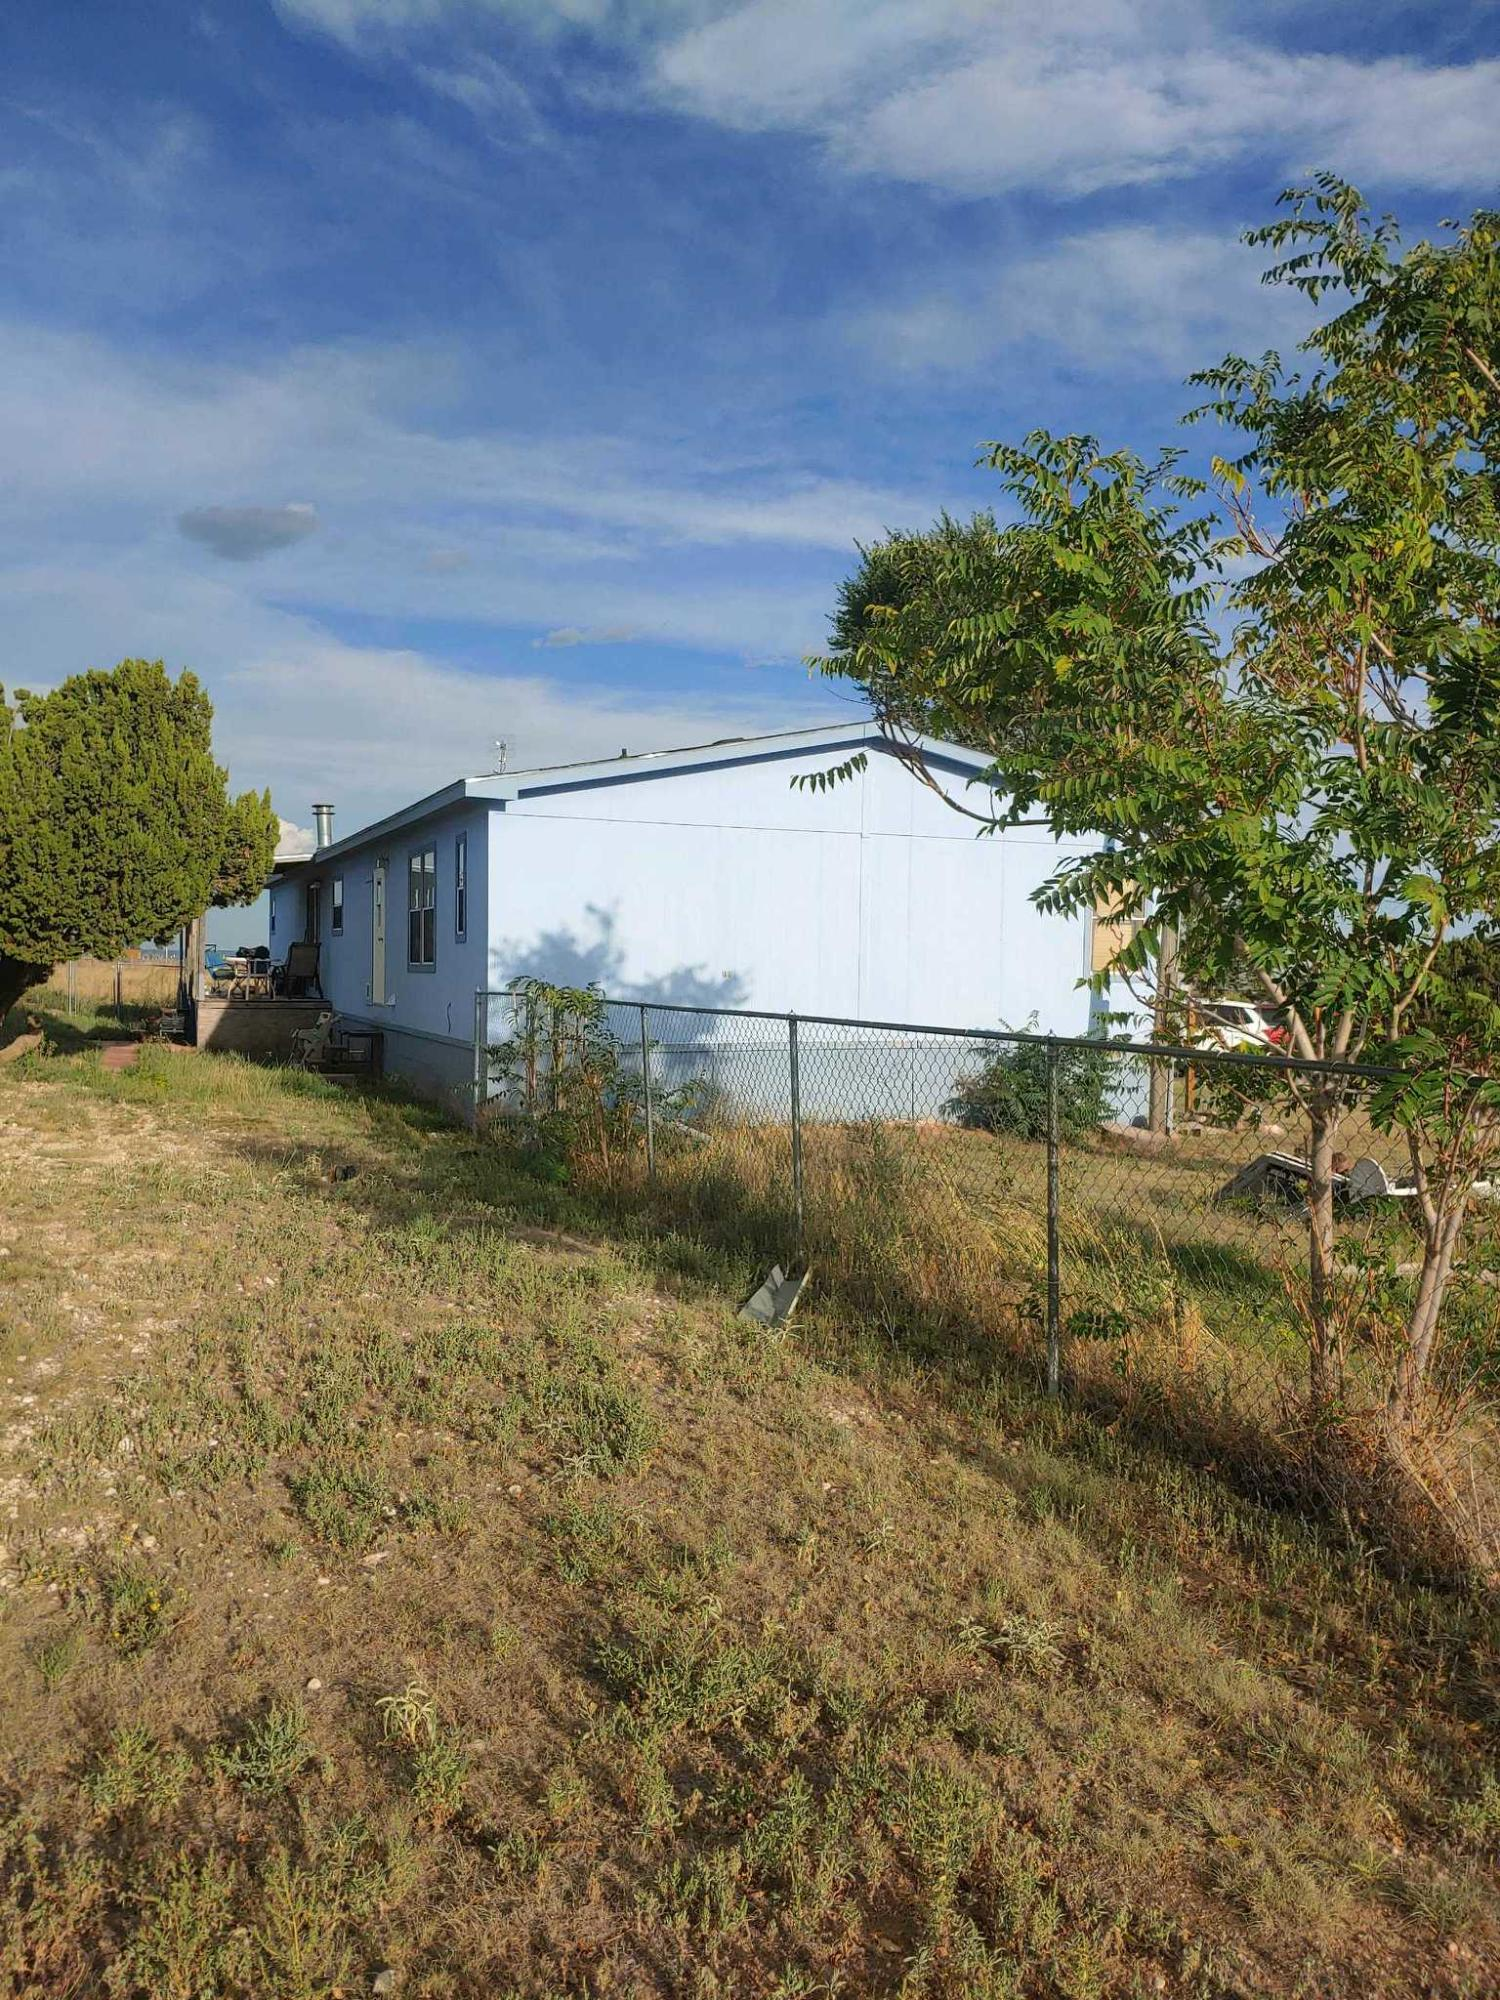 Four-bedroom, 2.5 bath Modular home (2,128sf) @Edgewood .    On 3 Acres 20 min from Albuquerque.   Large workshop/man cave, and a second storage building. Private septic tank,  Natural gas, and community water.  Pride of ownership really shows --   VIEWS!!!VIEWS!!!!VIEWS!!!!